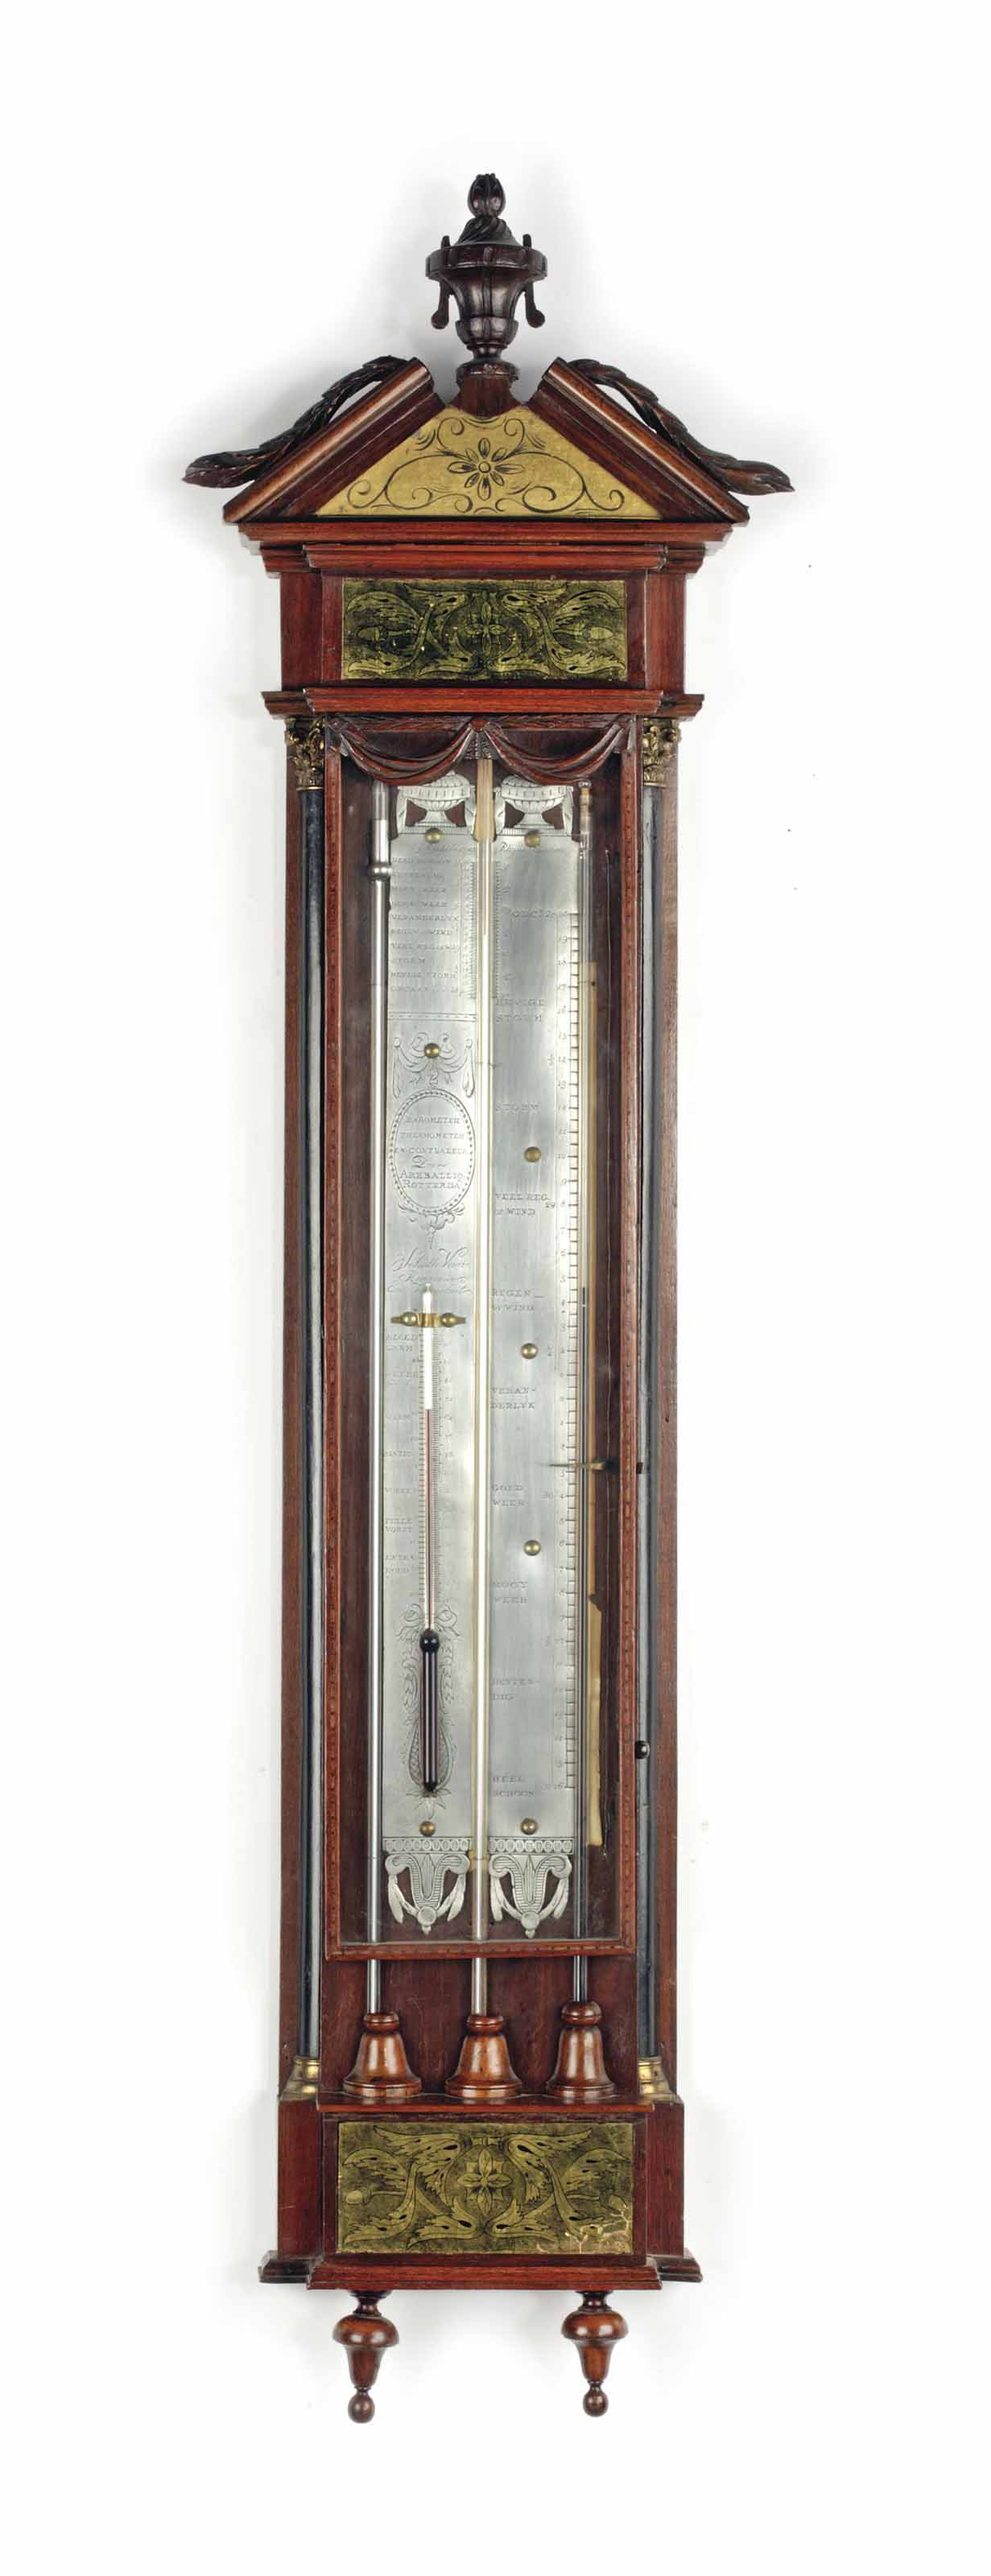 Barometer Oldenburg A Dutch Walnut Cistern Barometer With Verre églomise